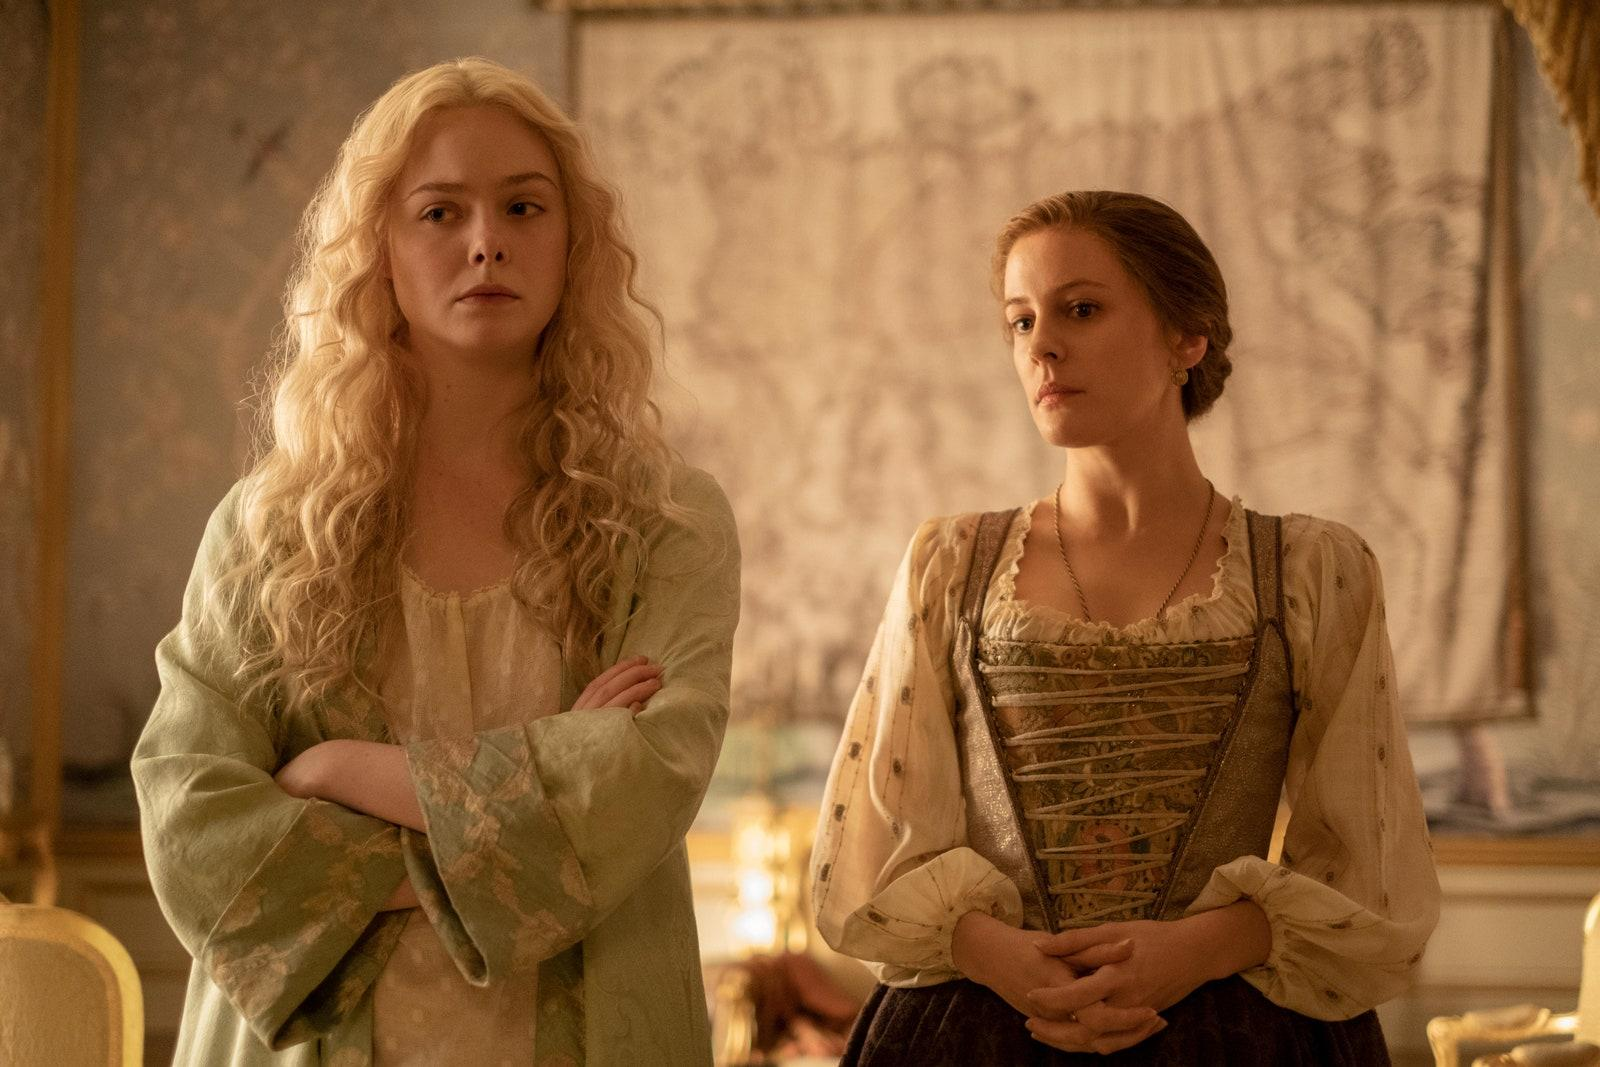 The Great (2020). Catherine has her long blonde hair loose, wearing a white night dress and a pale green robe. She has her arms folded, looking skeptical. Beside her is servant Marial (Phoebe Fox), a shorter white woman with light brown hair tied in a low bun. She wears a cream blouse with a beige floral corset over the top, her hands clasped in front of her. Marial gazes in the same director as Catherine, seemingly more curious than suspicious.